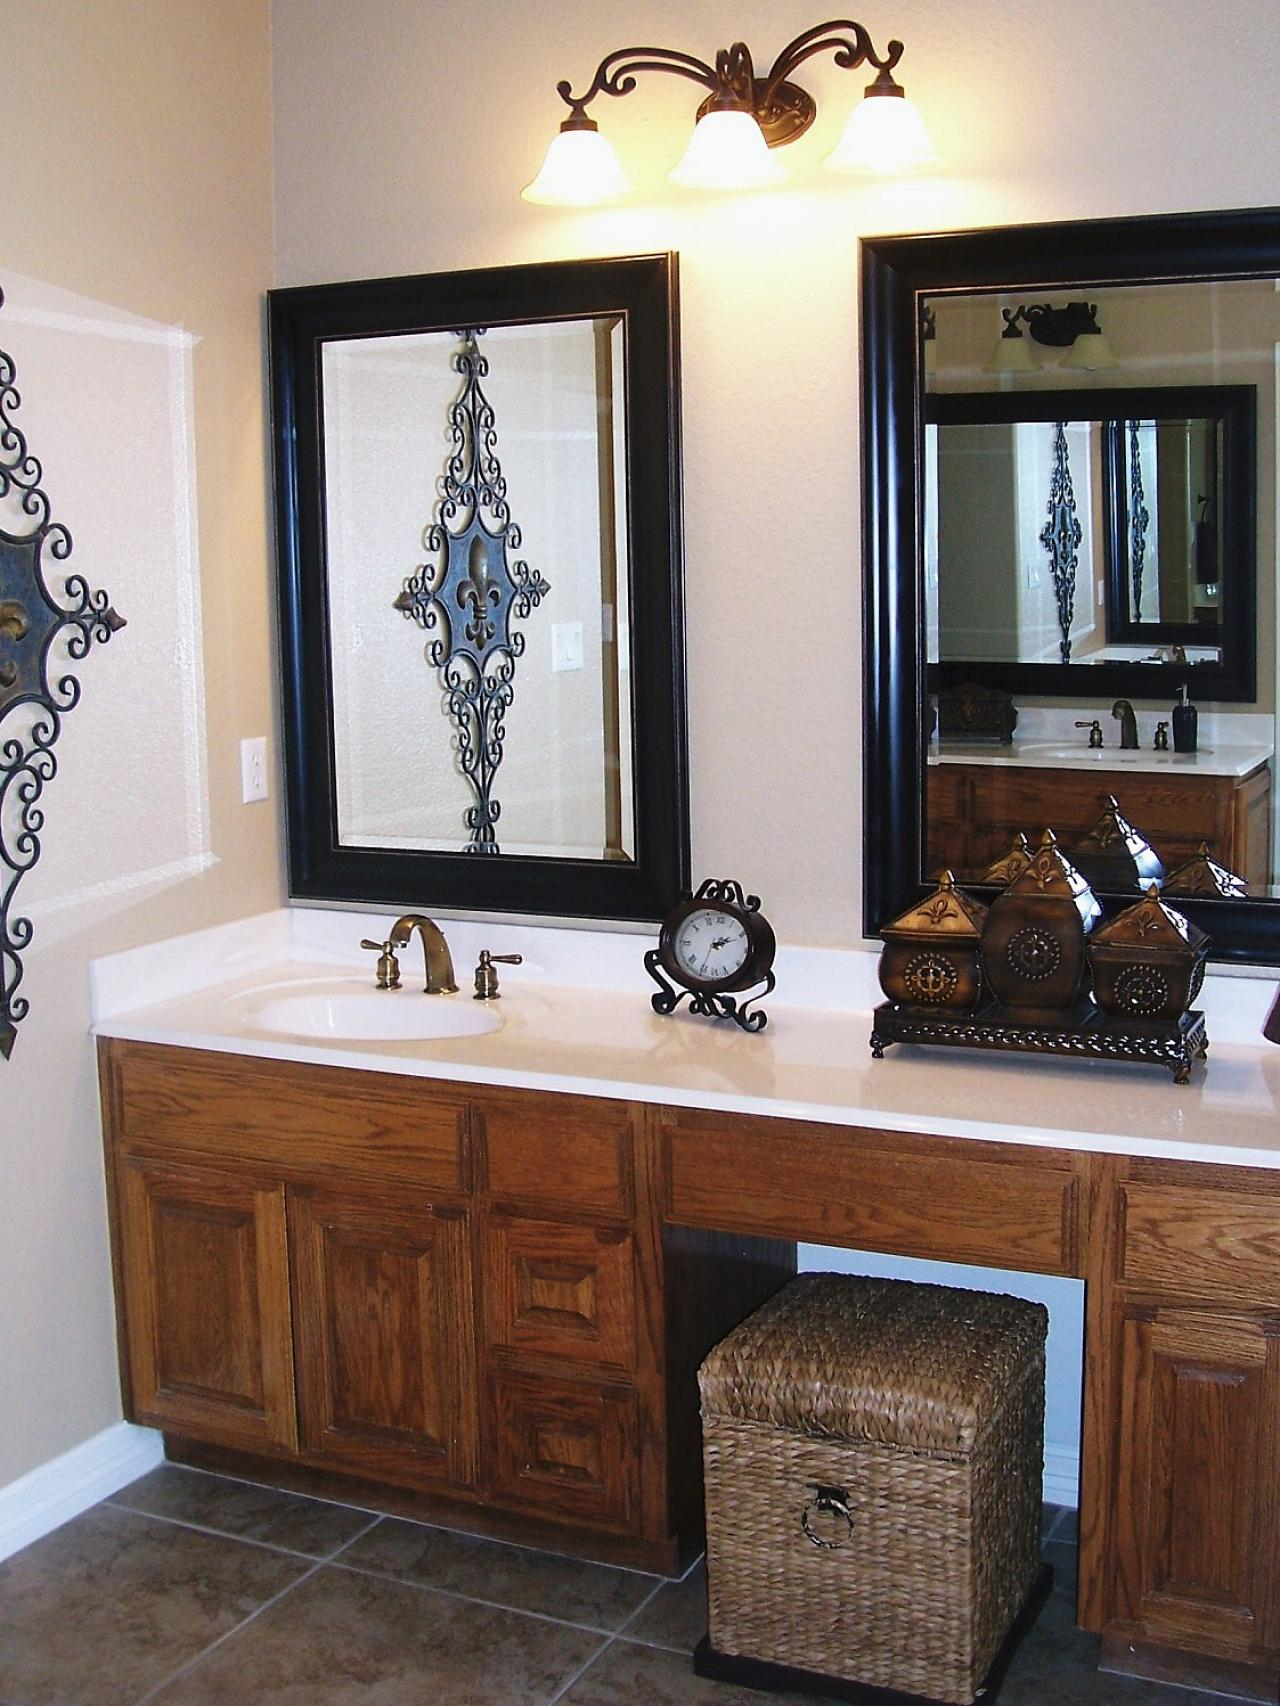 Glamorous Types Of Vanity Mirrors - Darbylanefurniture regarding Bathroom Vanity Mirrors